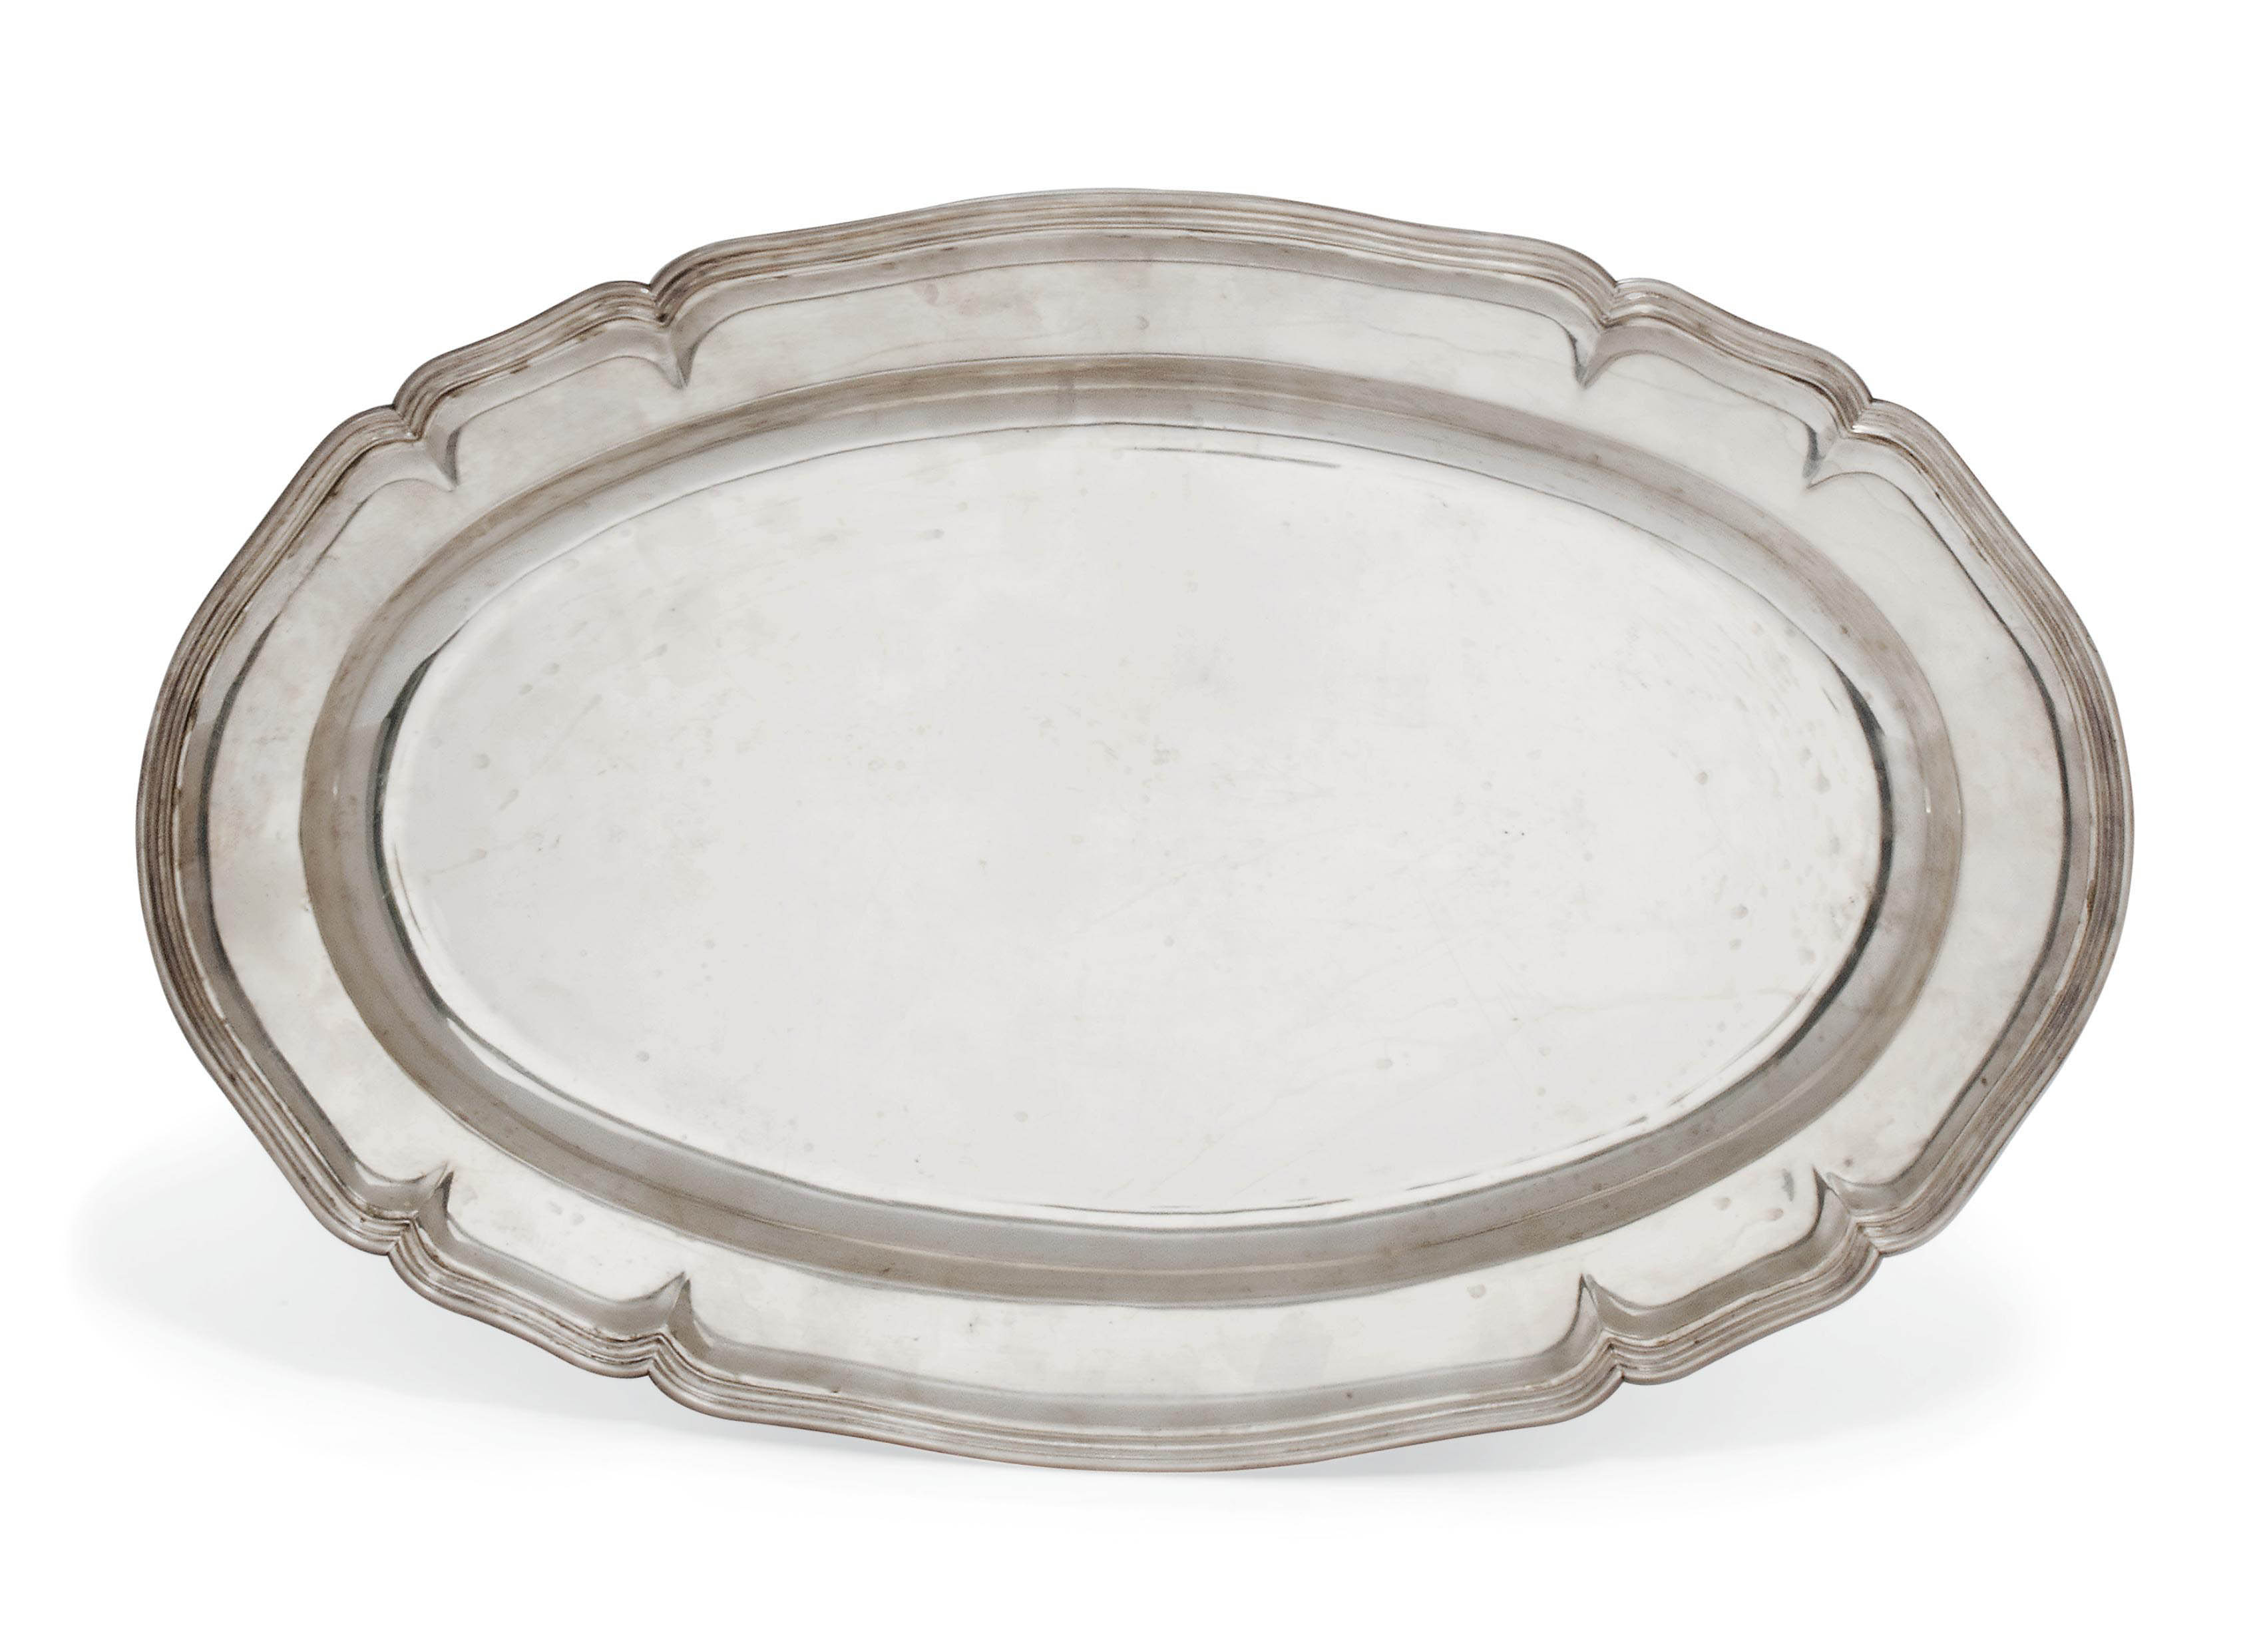 A RUSSIAN SILVER SHAPED OVAL MEAT DISH